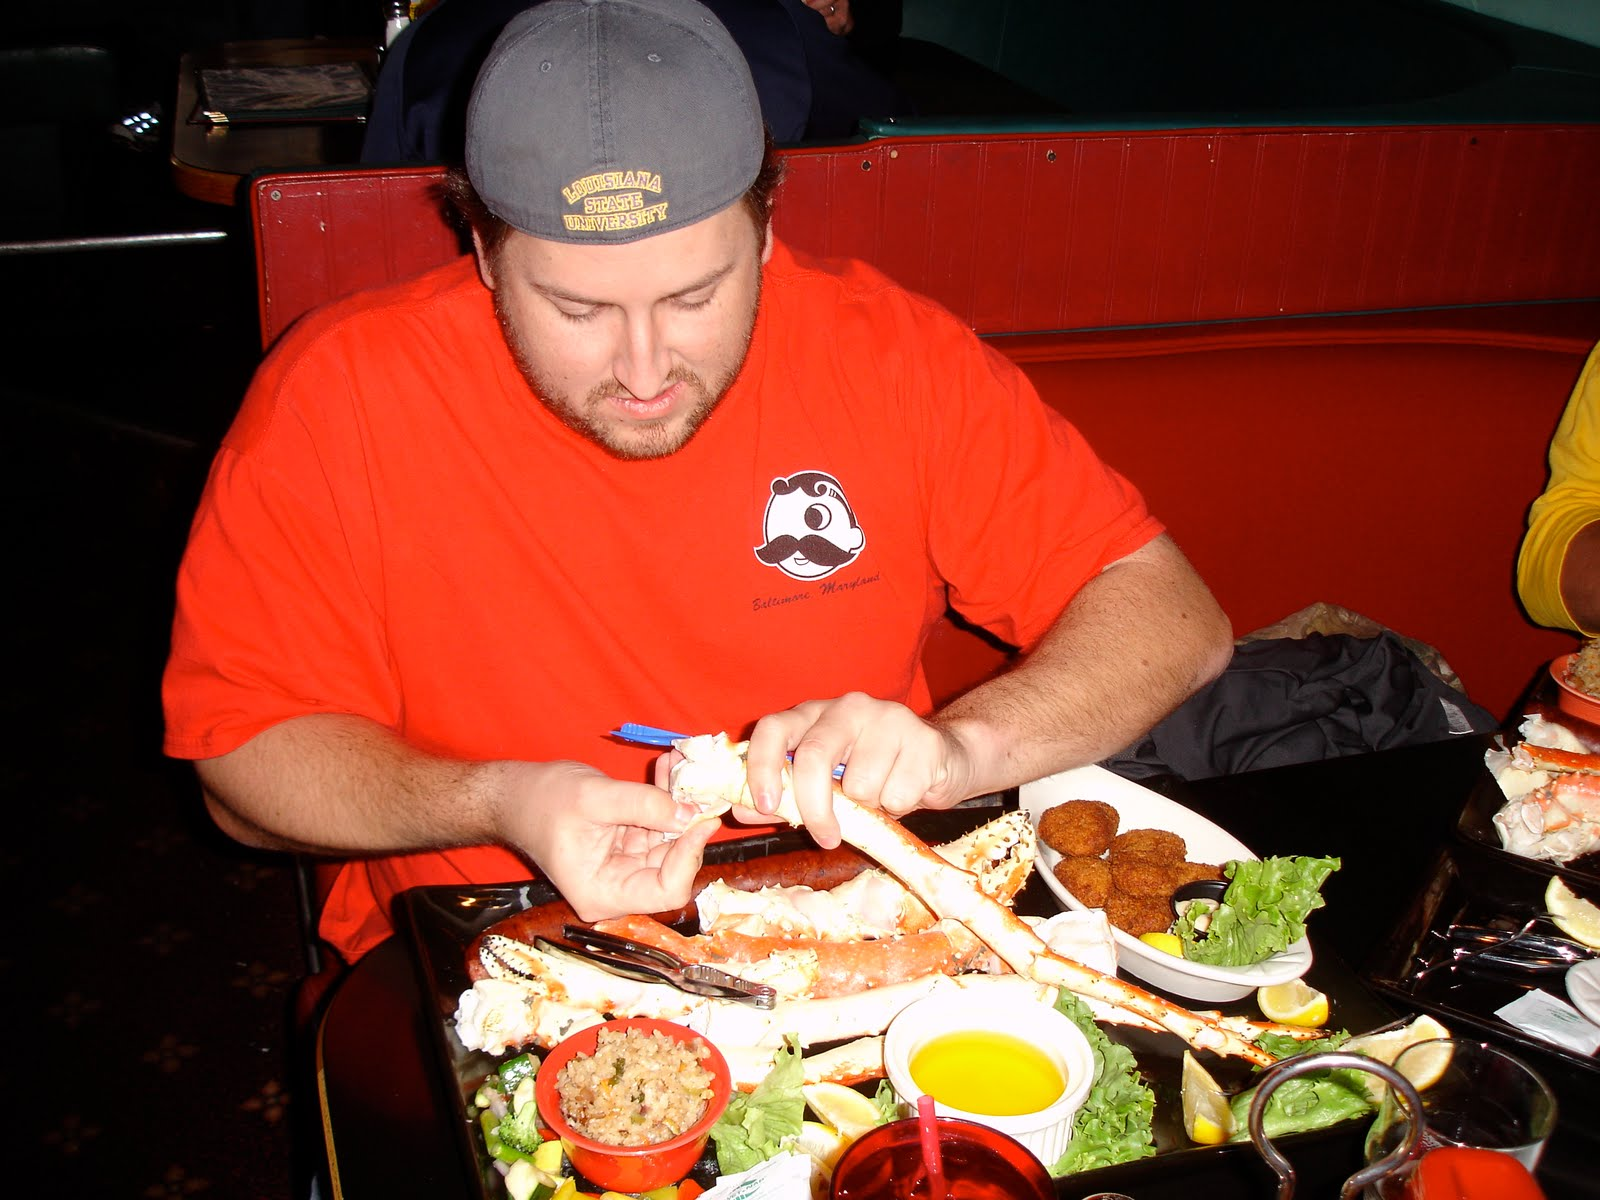 Jay digs into the Alaskan King Crab legs at Humpys